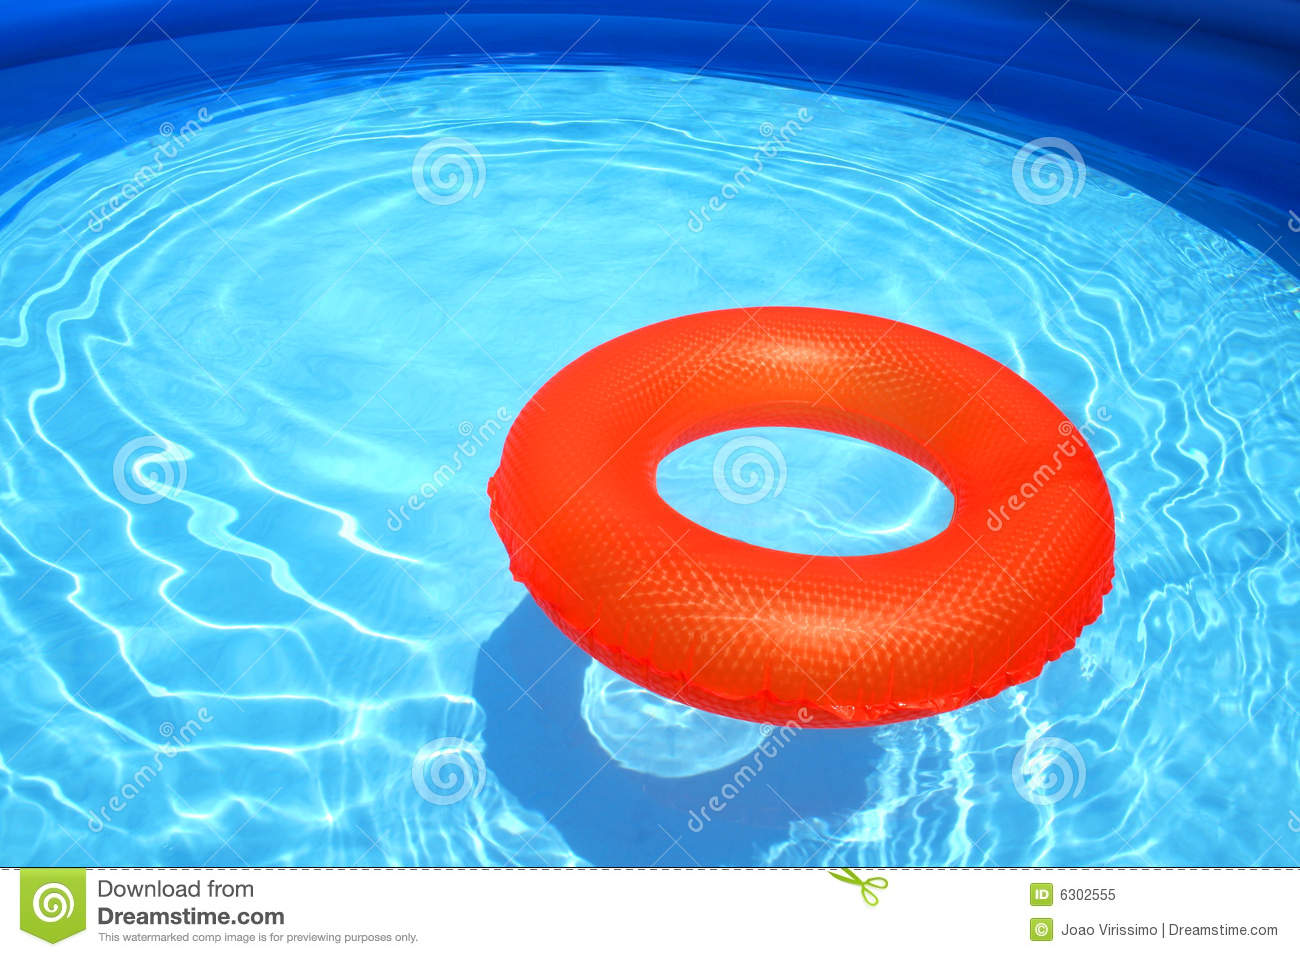 Pool Floats Clipart Pool Float Clip Art Swim Ring In A Swimming Pool